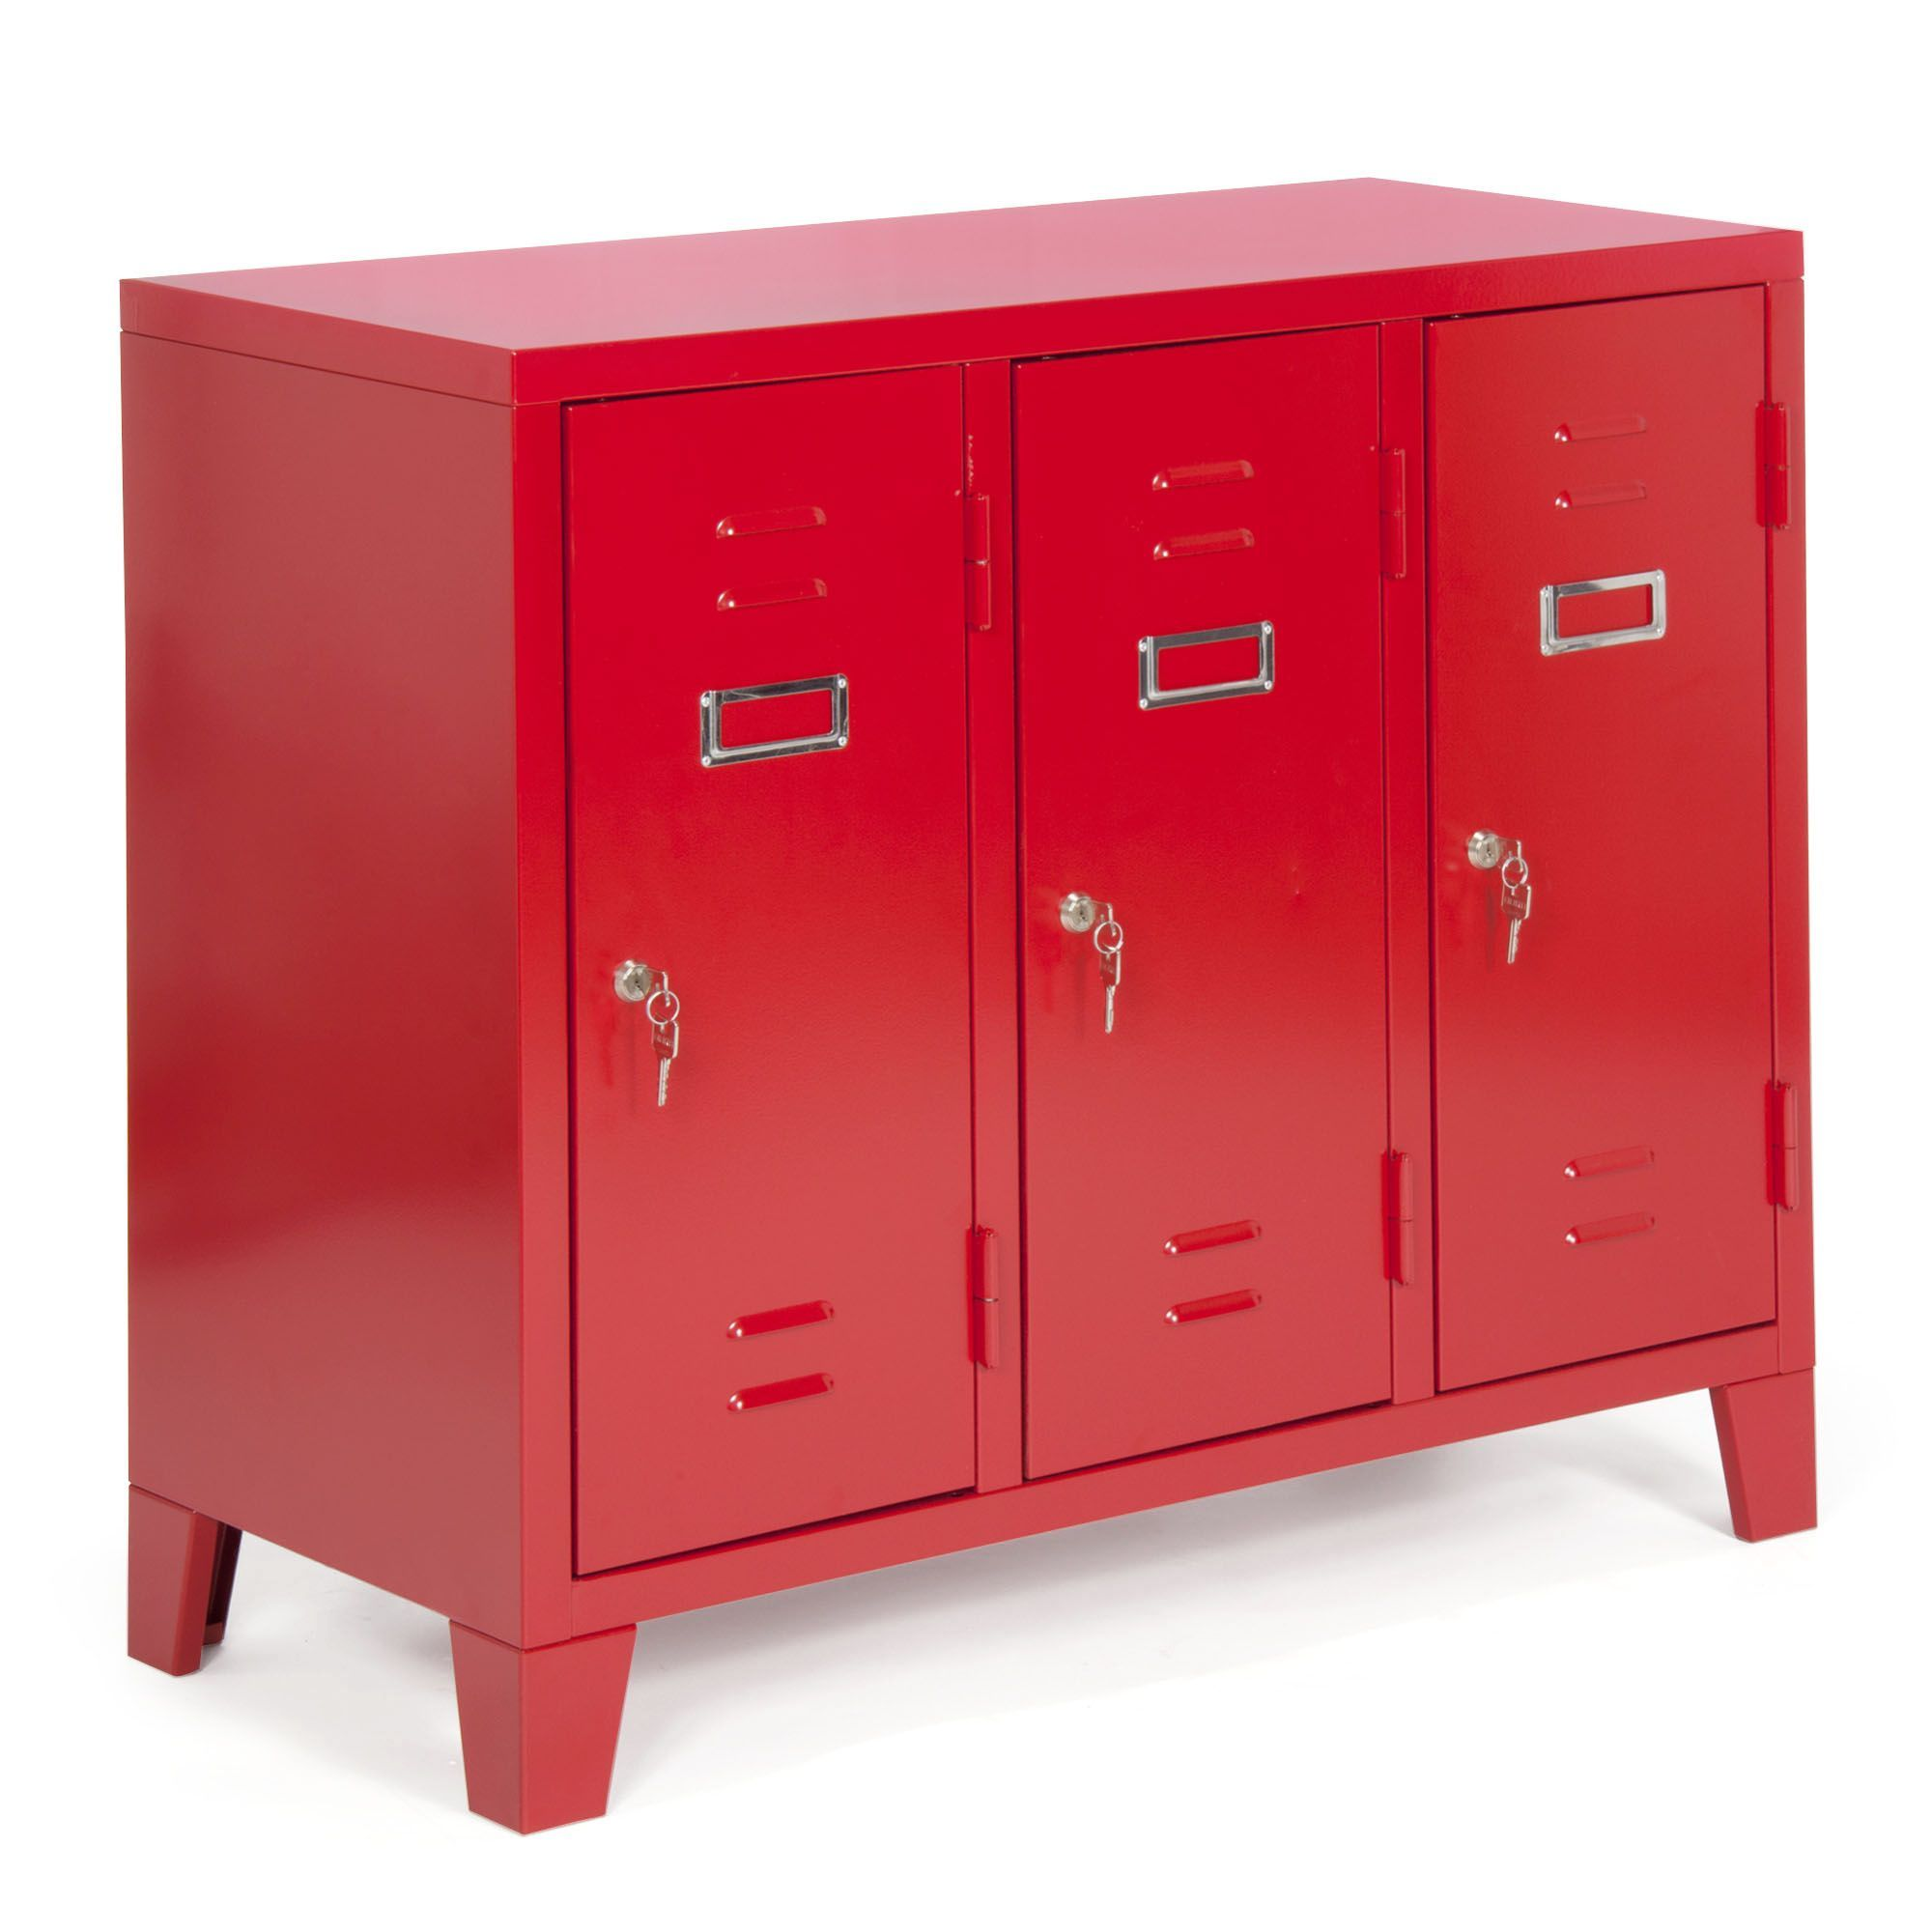 caisson de bureau 3 portes en acier rouge larsen les caissons les rangements bureau. Black Bedroom Furniture Sets. Home Design Ideas